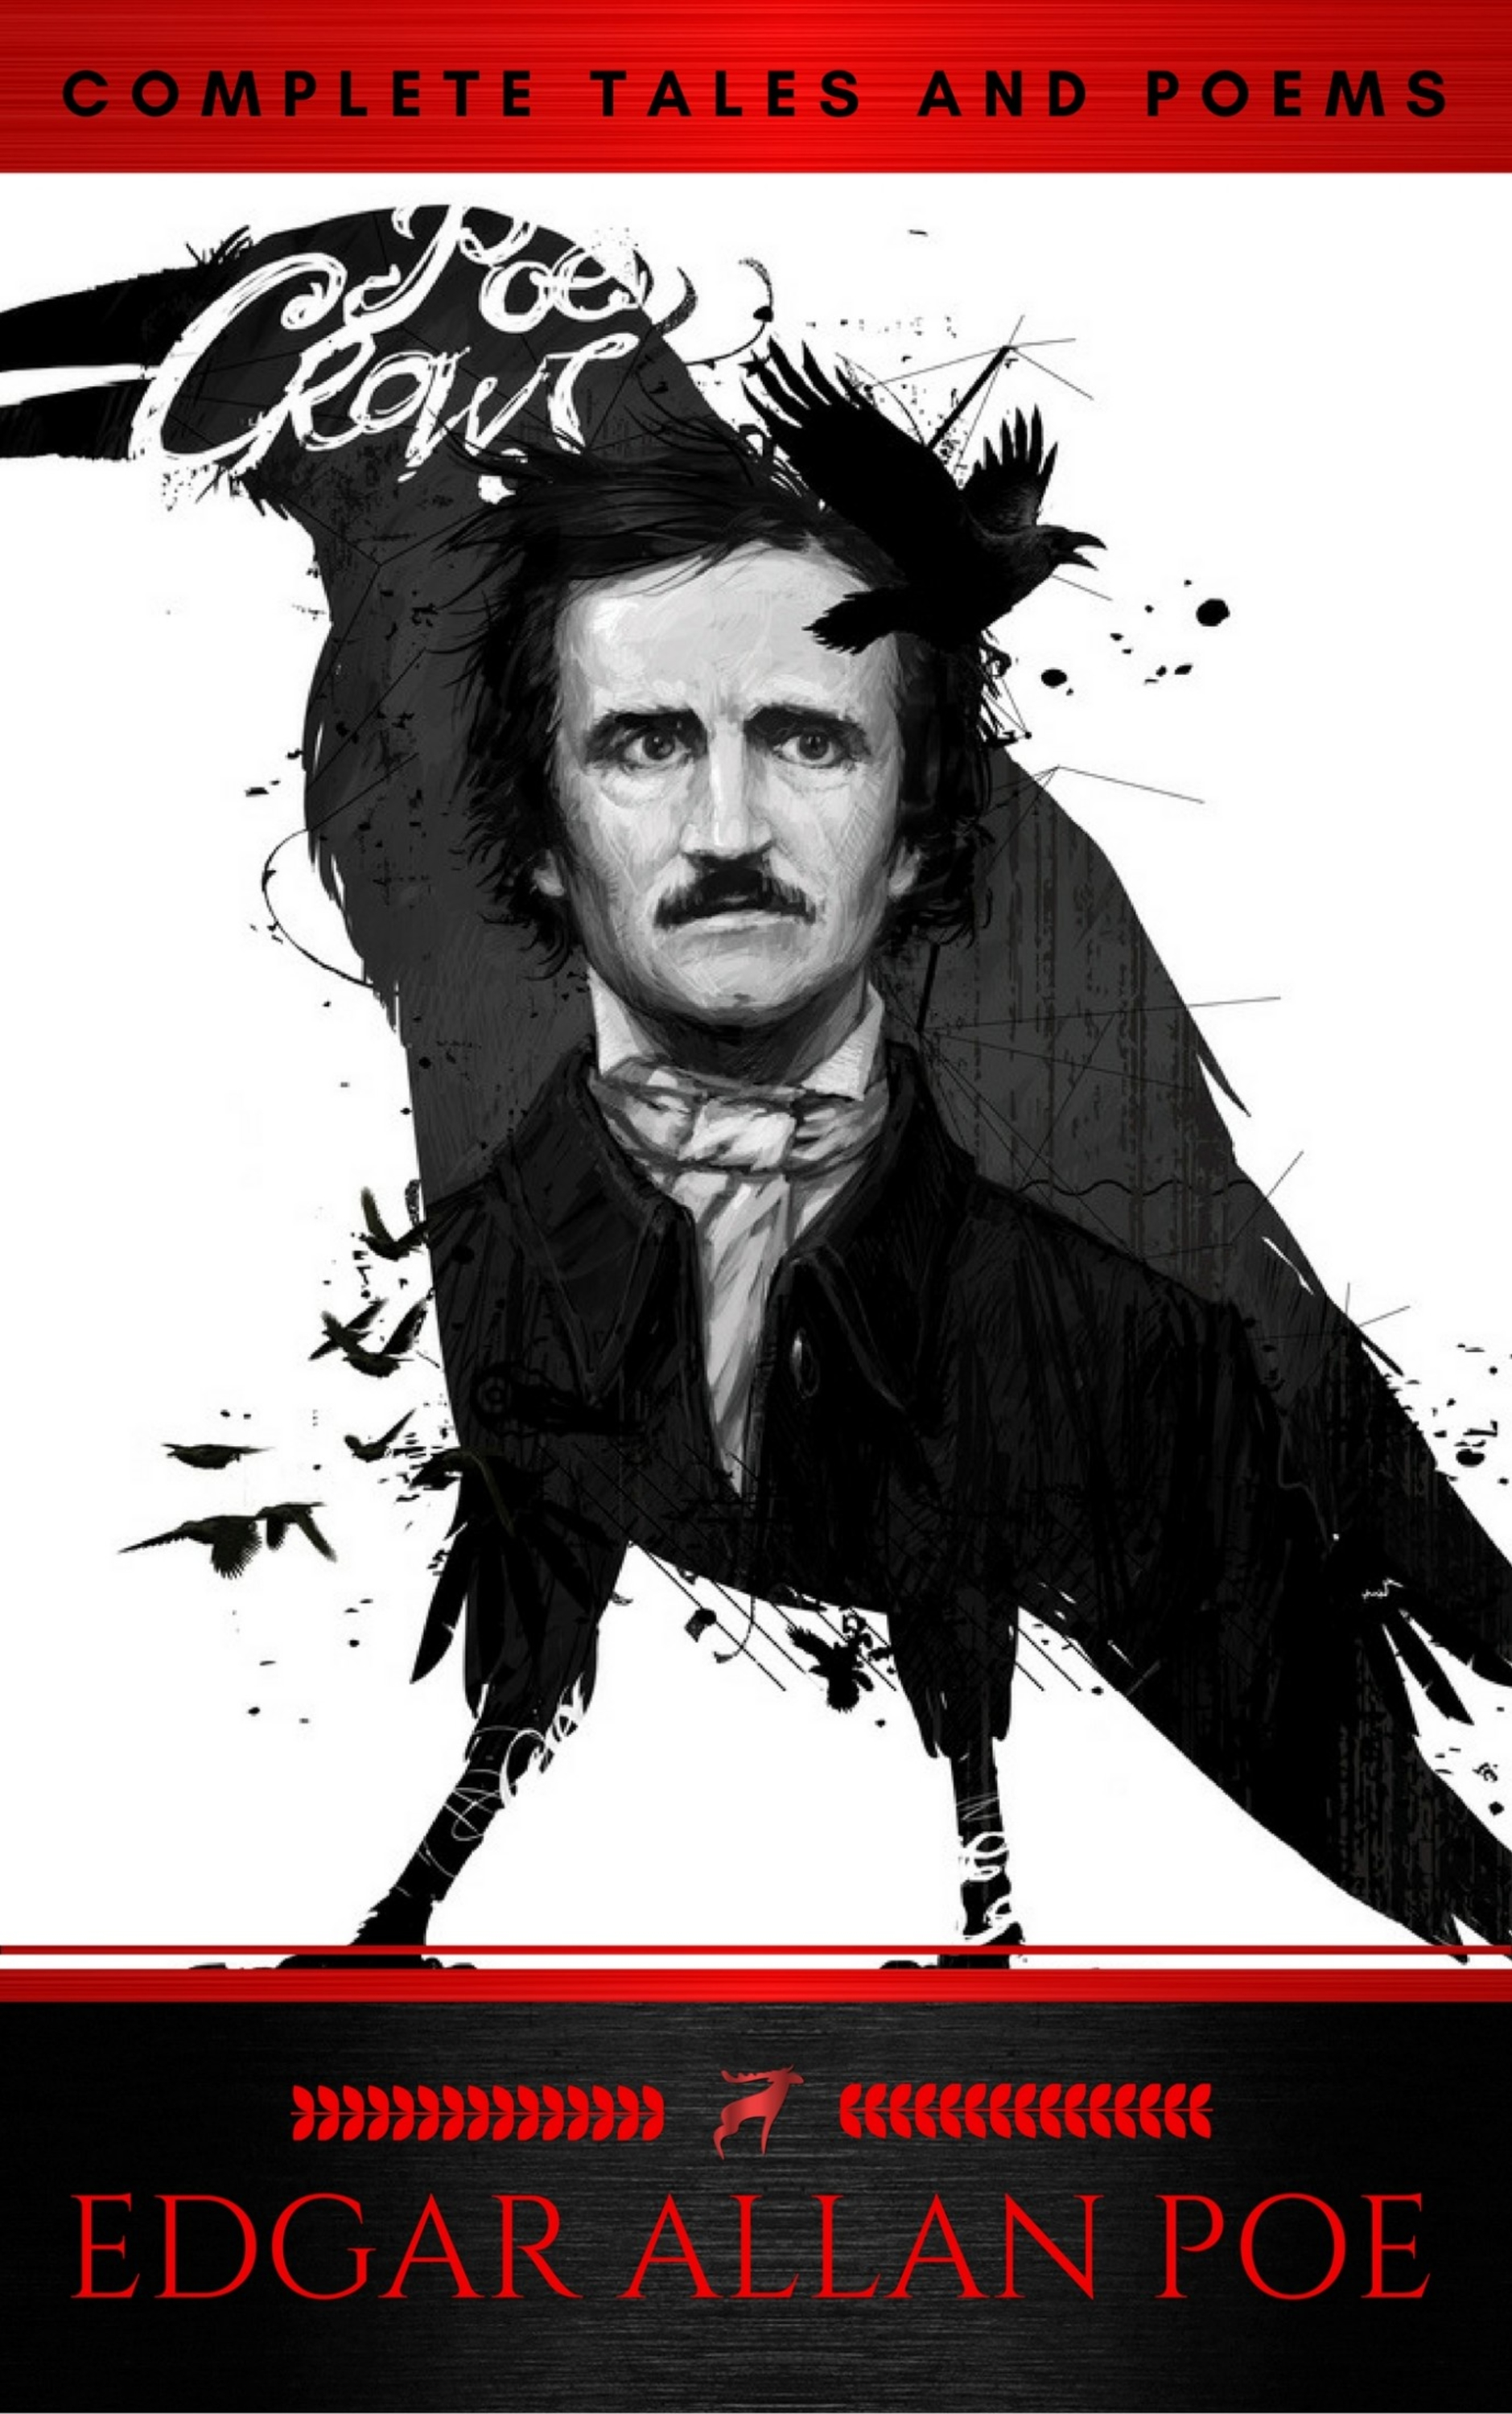 Эдгар Аллан По The Collected Works of Edgar Allan Poe: A Complete Collection of Poems and Tales футболка поло la redoute из трикотажа пике xl серый